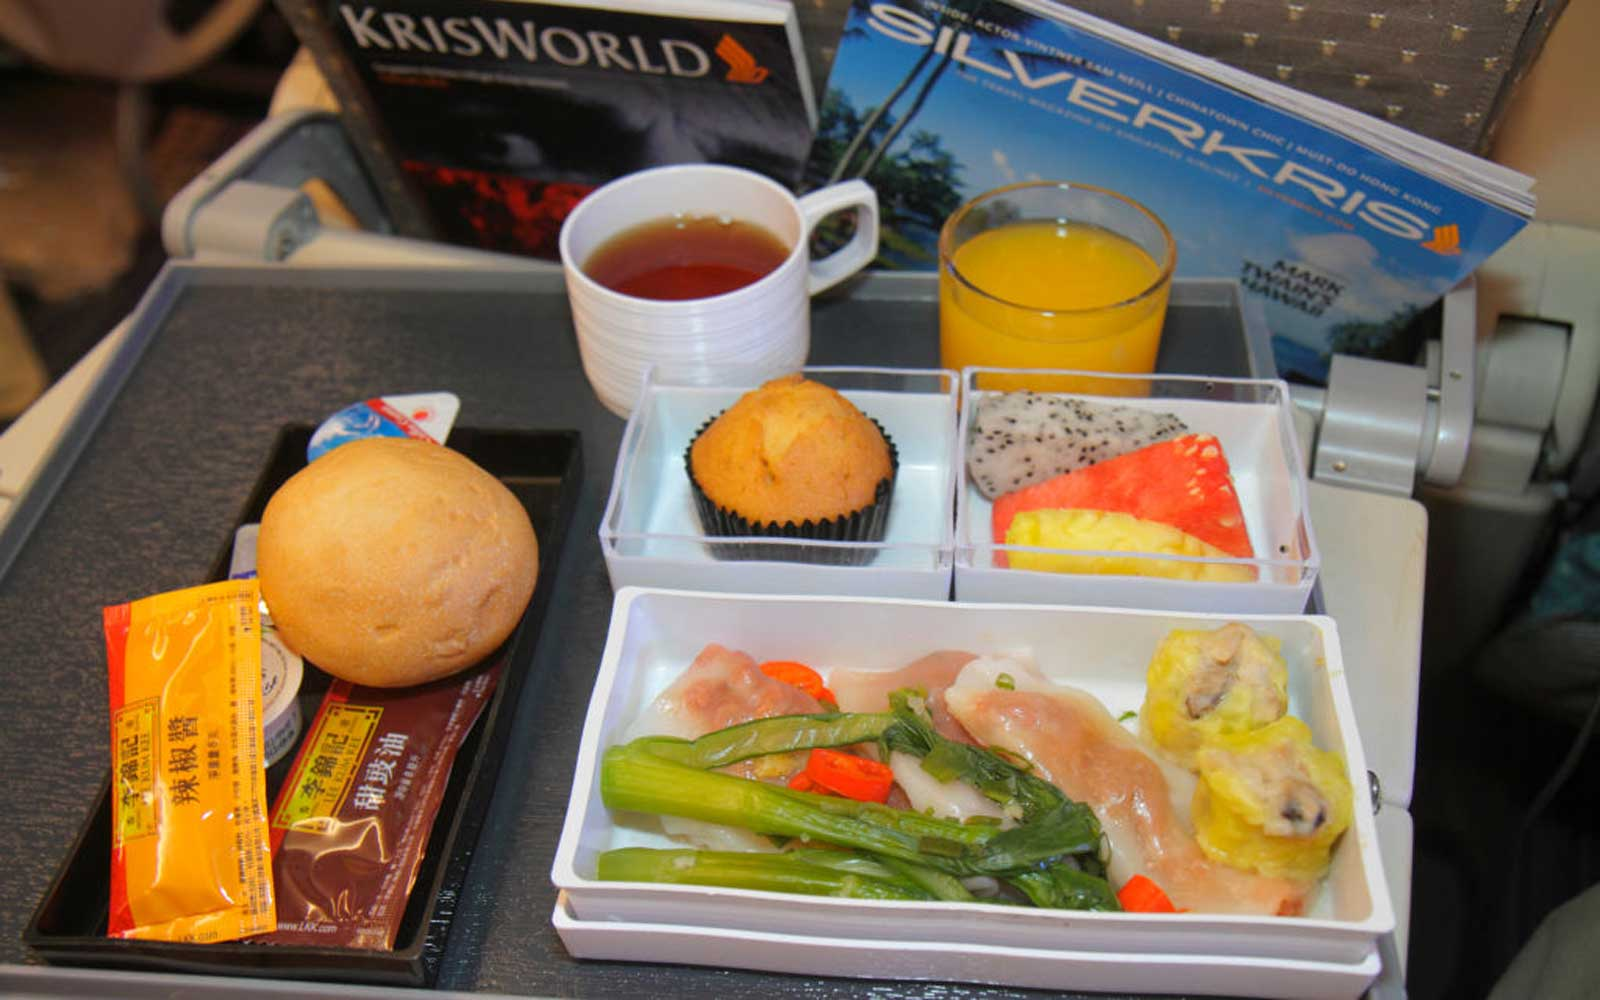 Singapore Airlines onboard meal.